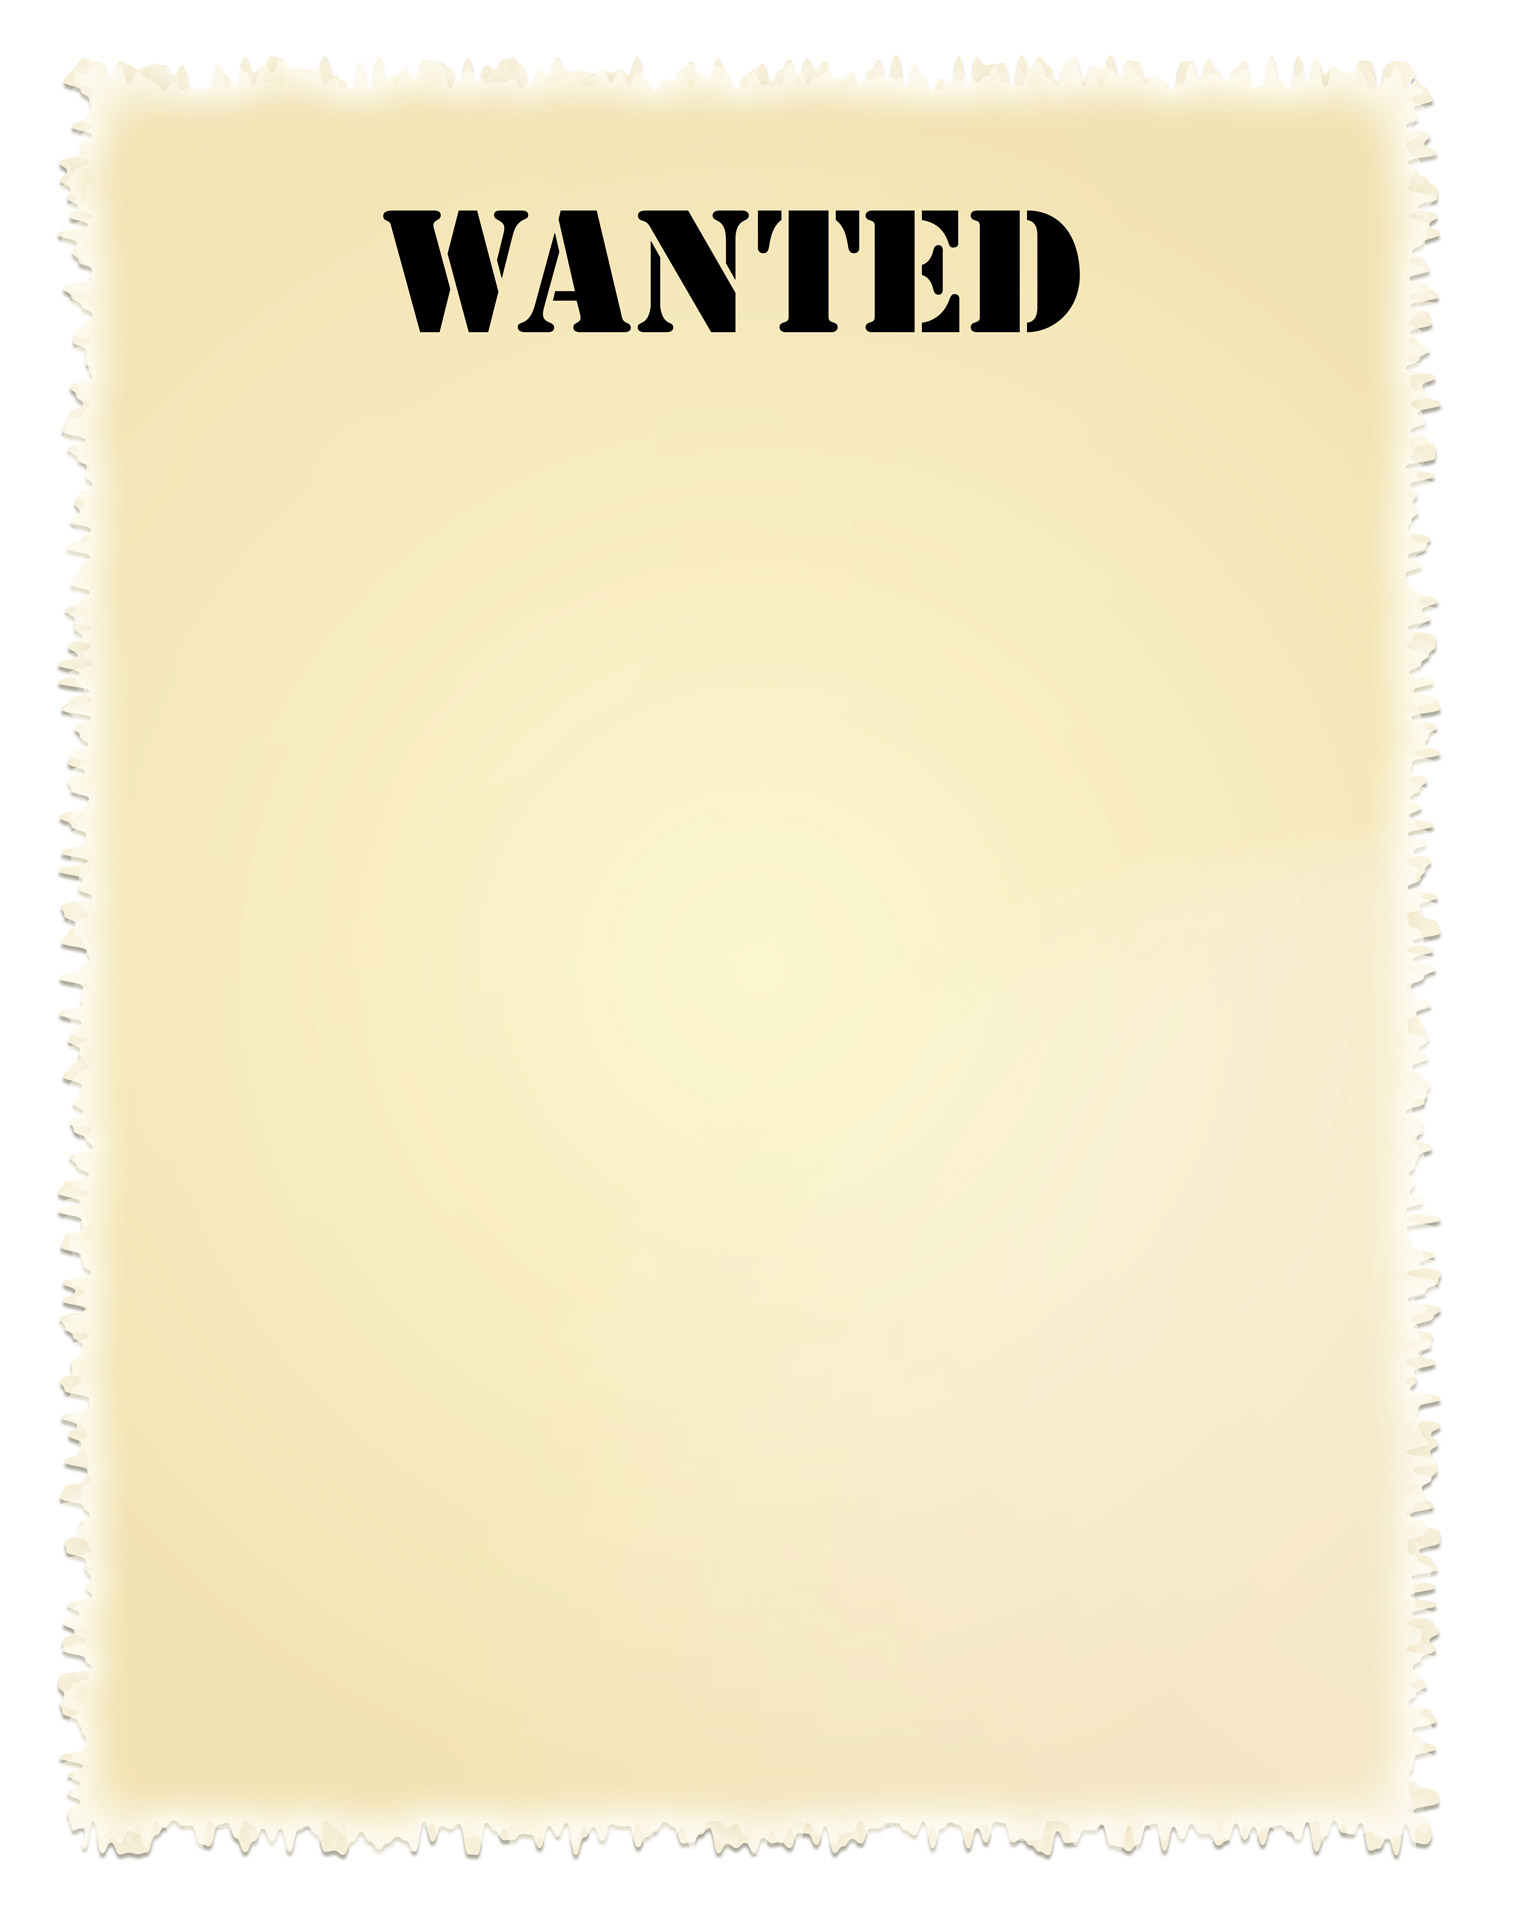 Wanted Poster Clip Art Free Stock Photo Hd   Public Domain Pictures